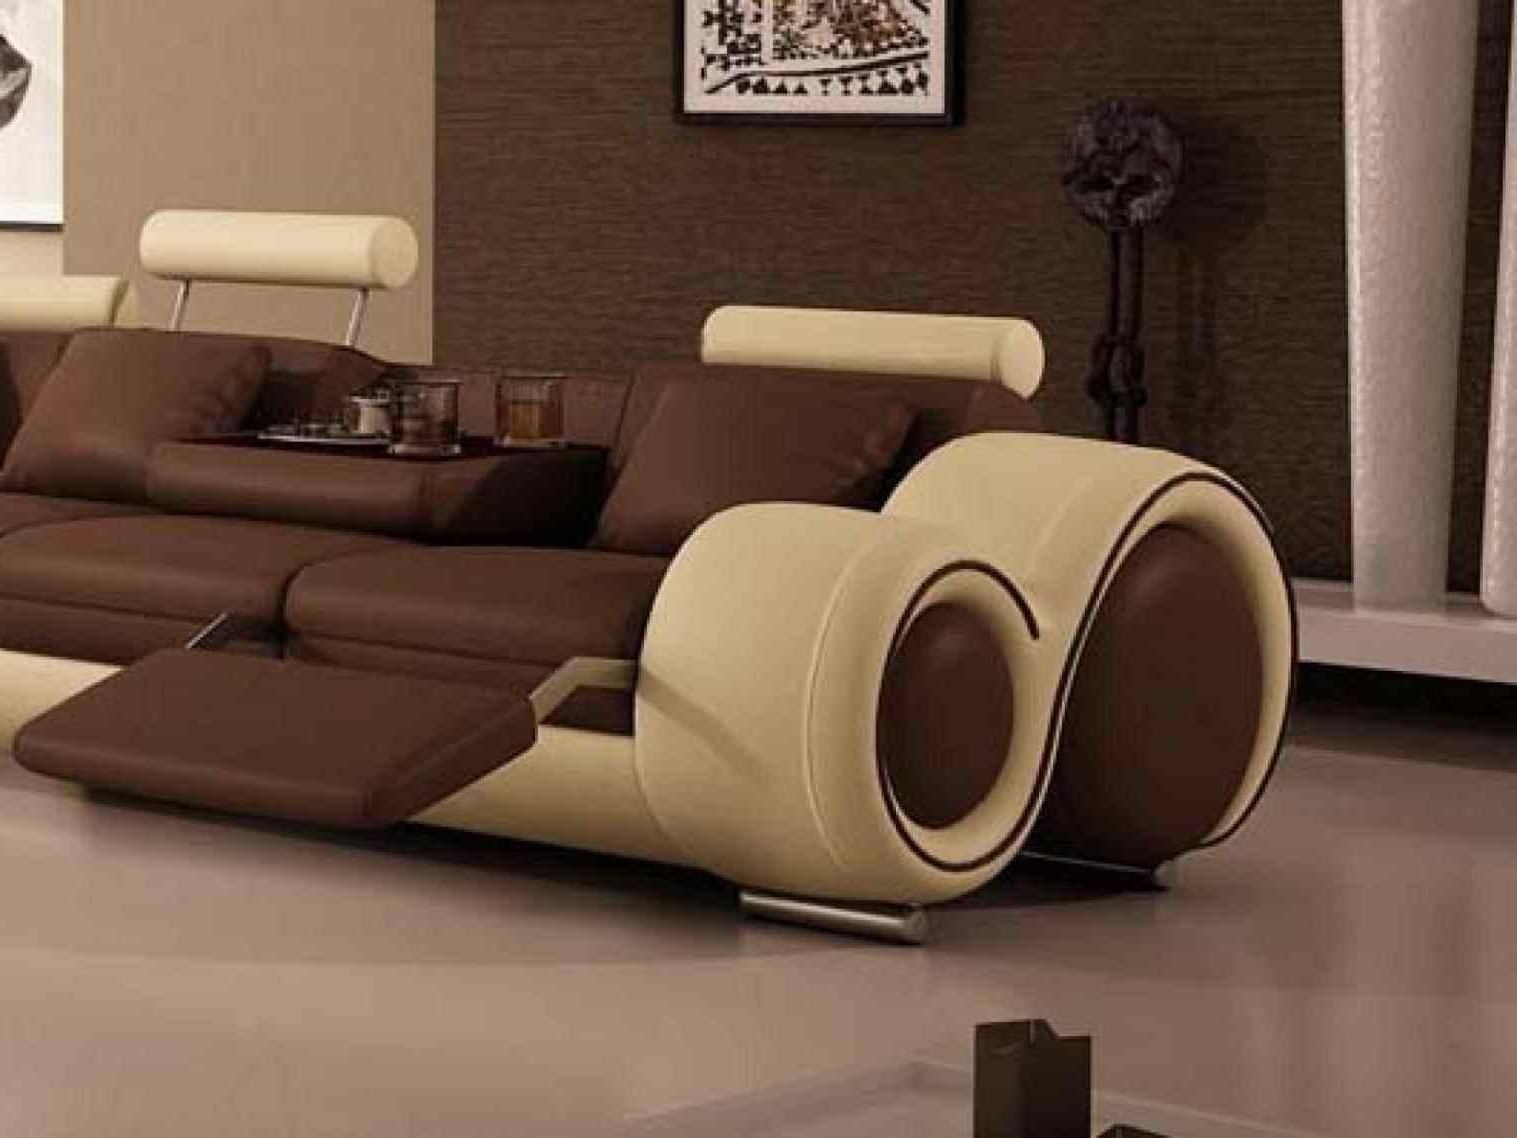 Unusual Sofa Throughout Most Current Sofa : Furniture Modern Unusual Sofa Design Awesome Style Riveting (View 14 of 20)